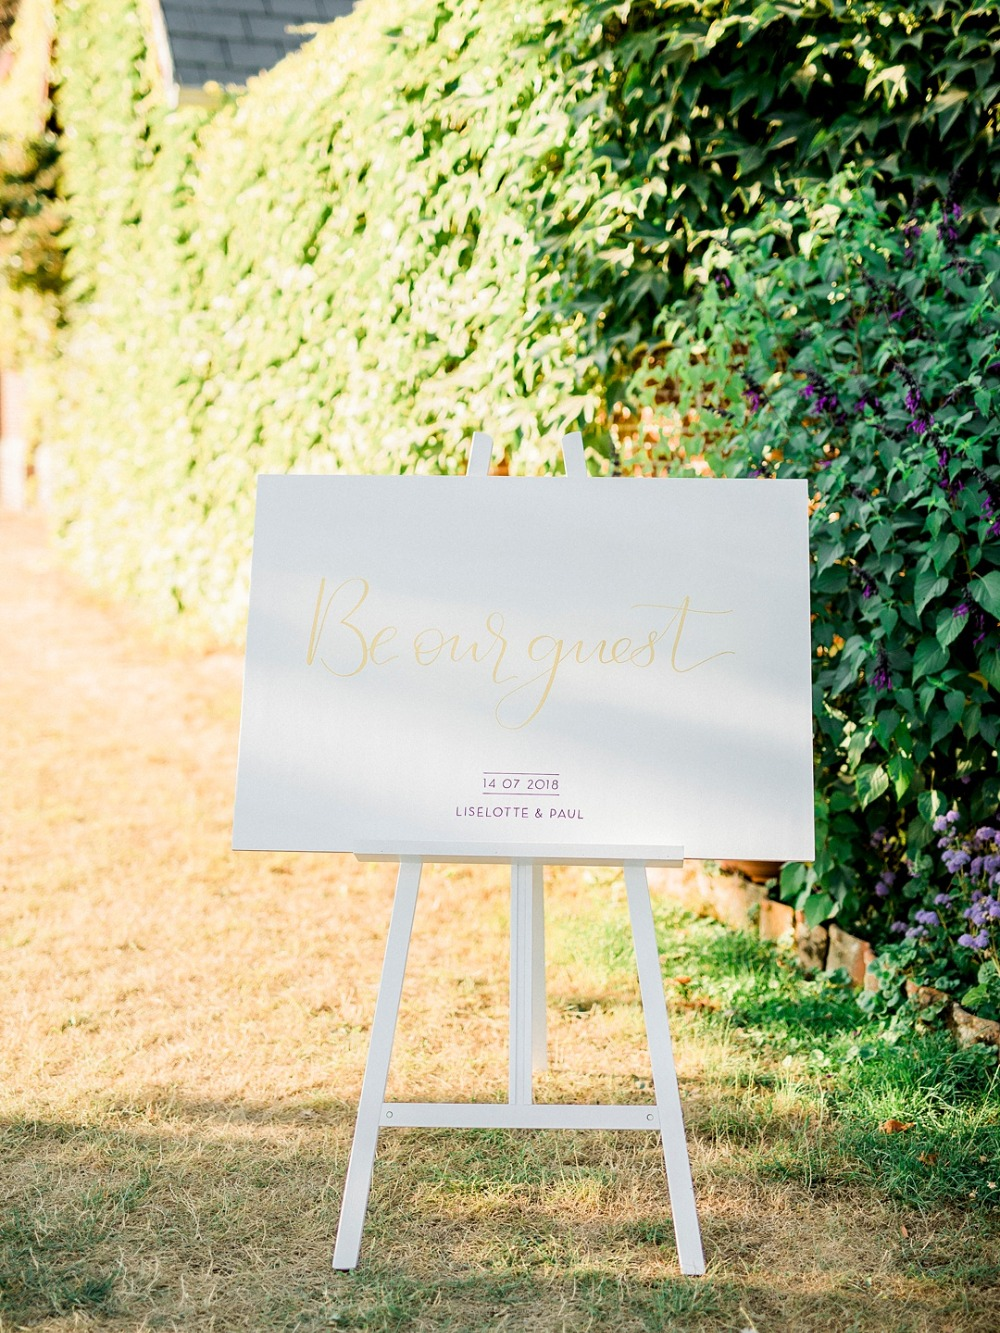 'Be our guest' wedding sign